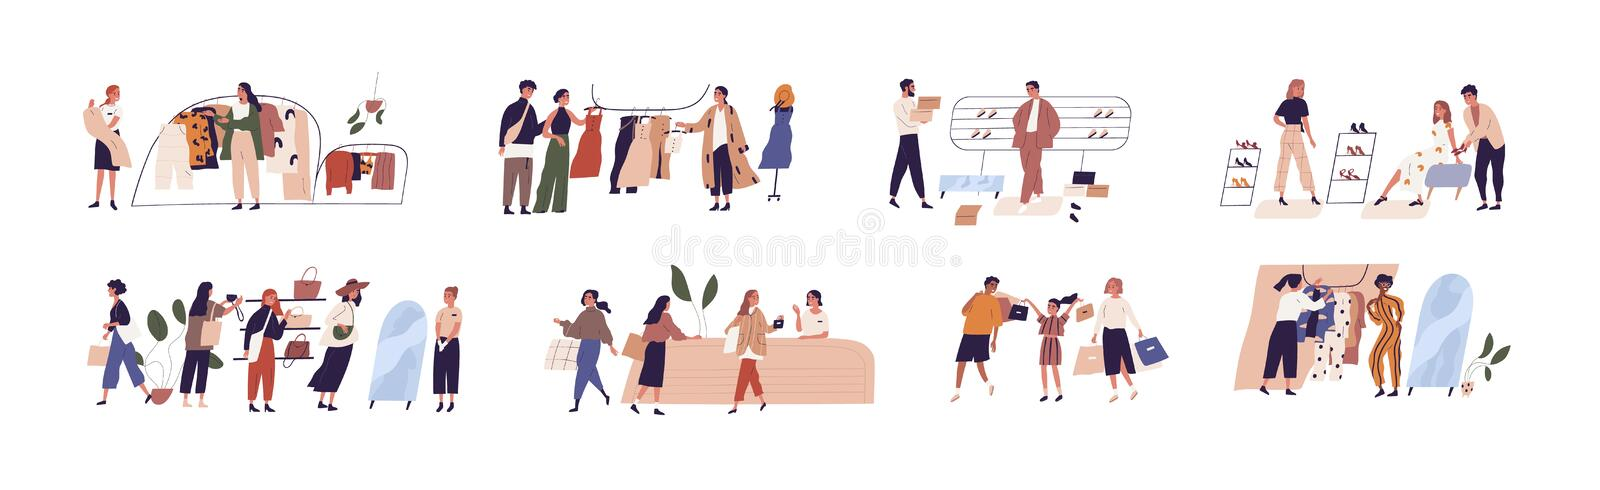 People shopping flat vector illustrations set. Happy boutique customers and friendly sellers cartoon characters vector illustration